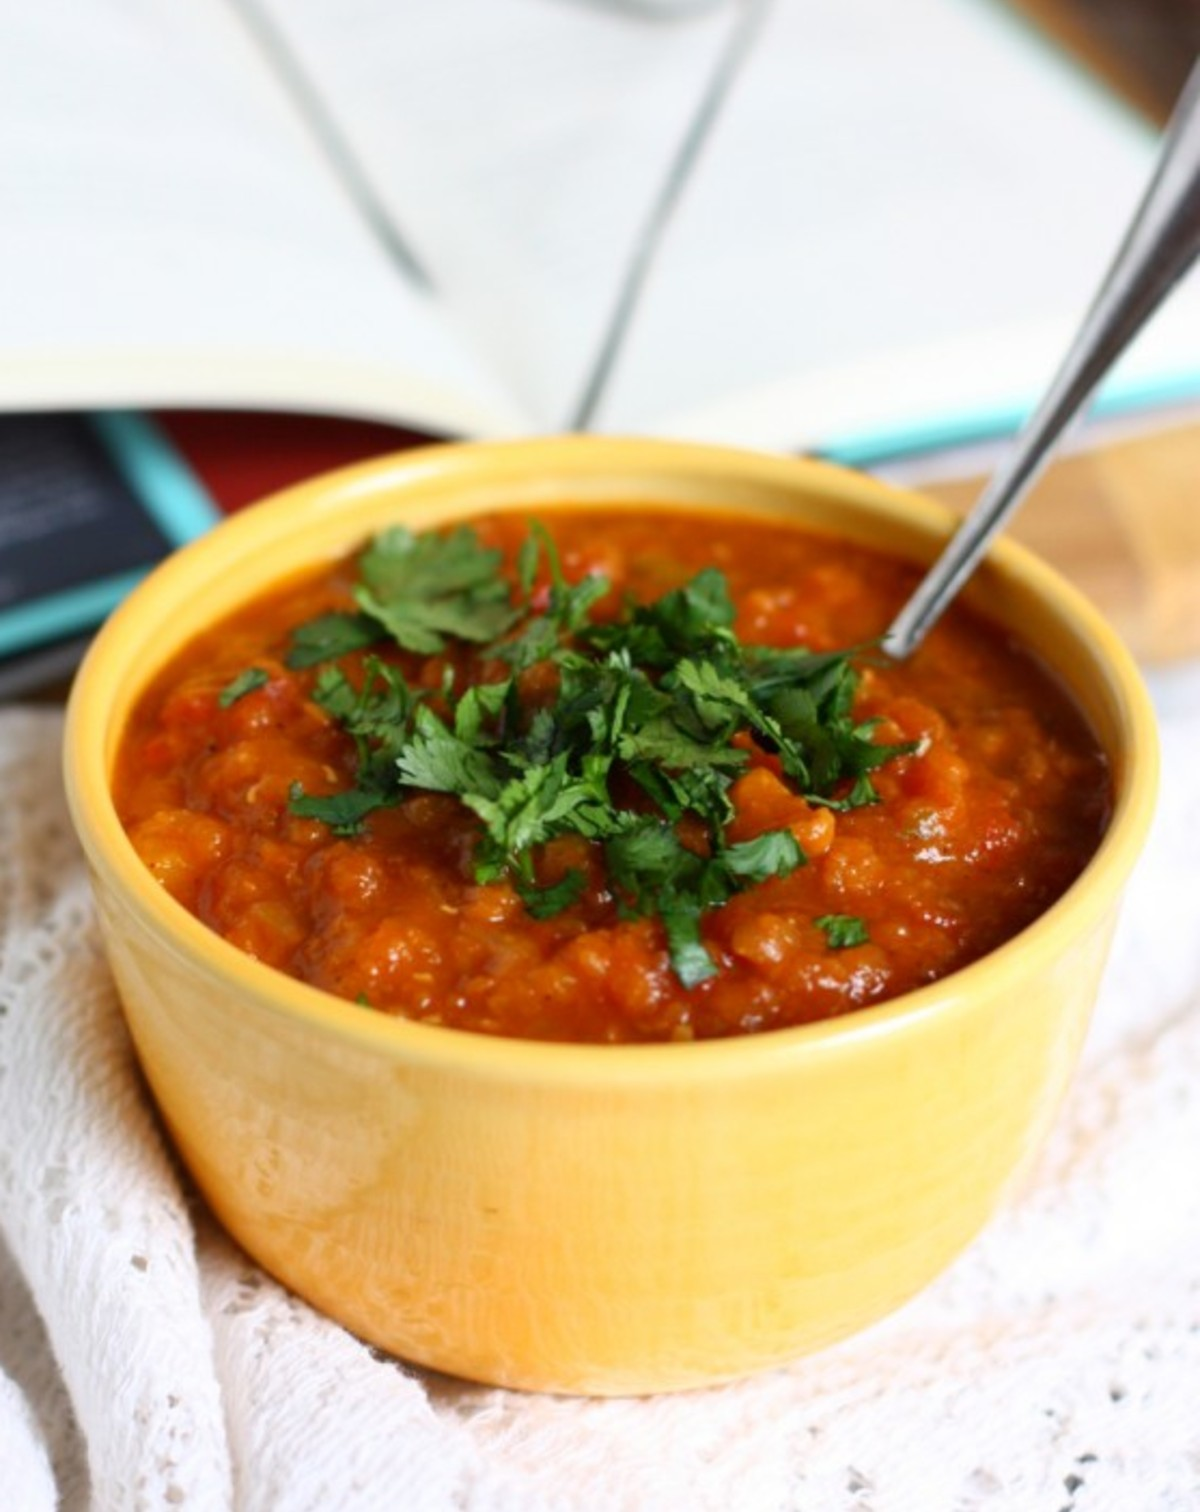 Chickpea, Butternut Squash, and Red Lentil Stew